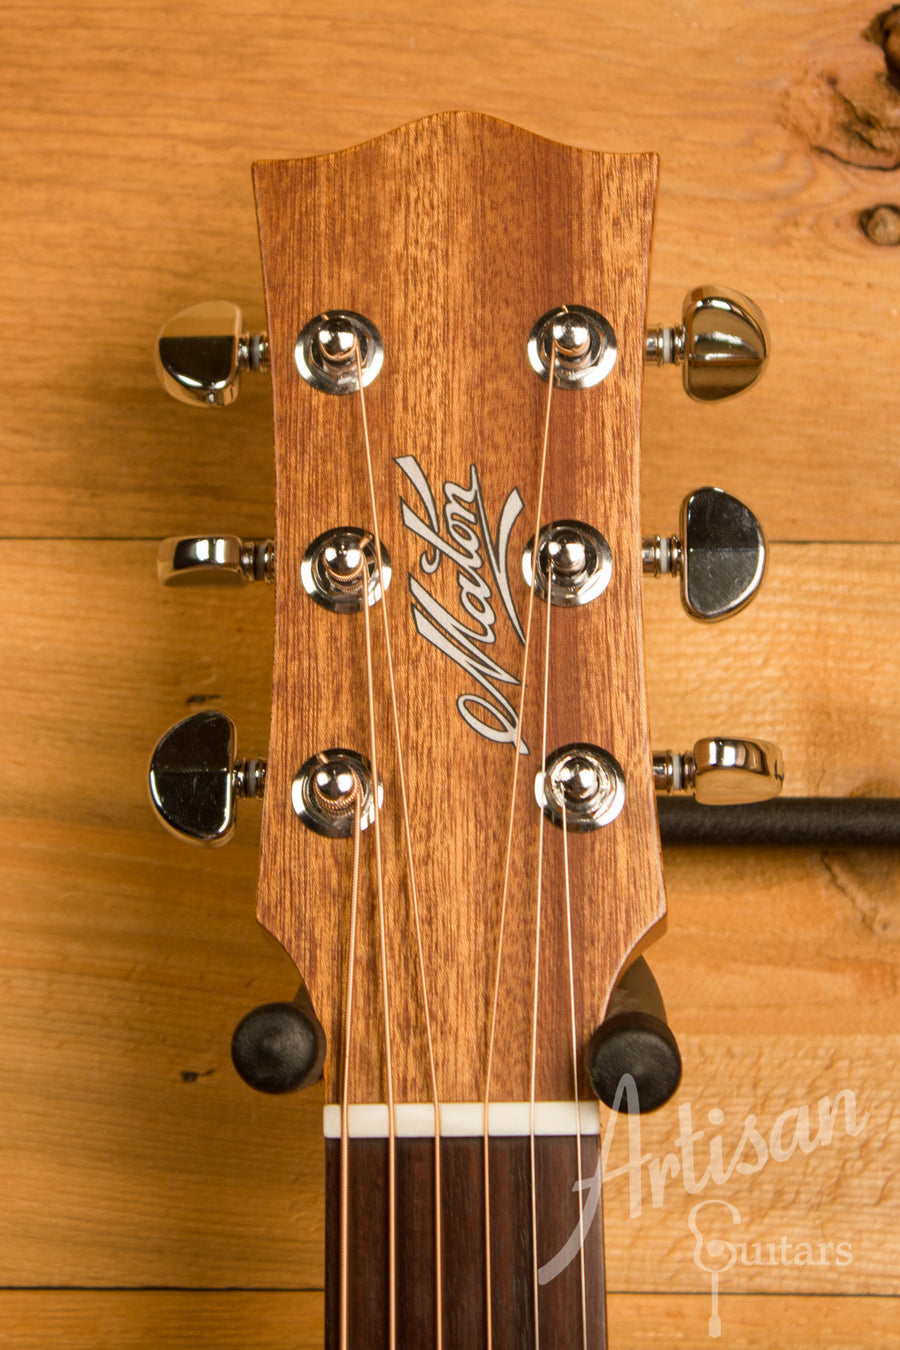 Maton SRS808C Guitar Western Red Cedar and Solid Blackwood Cutaway ID-11494 - Artisan Guitars